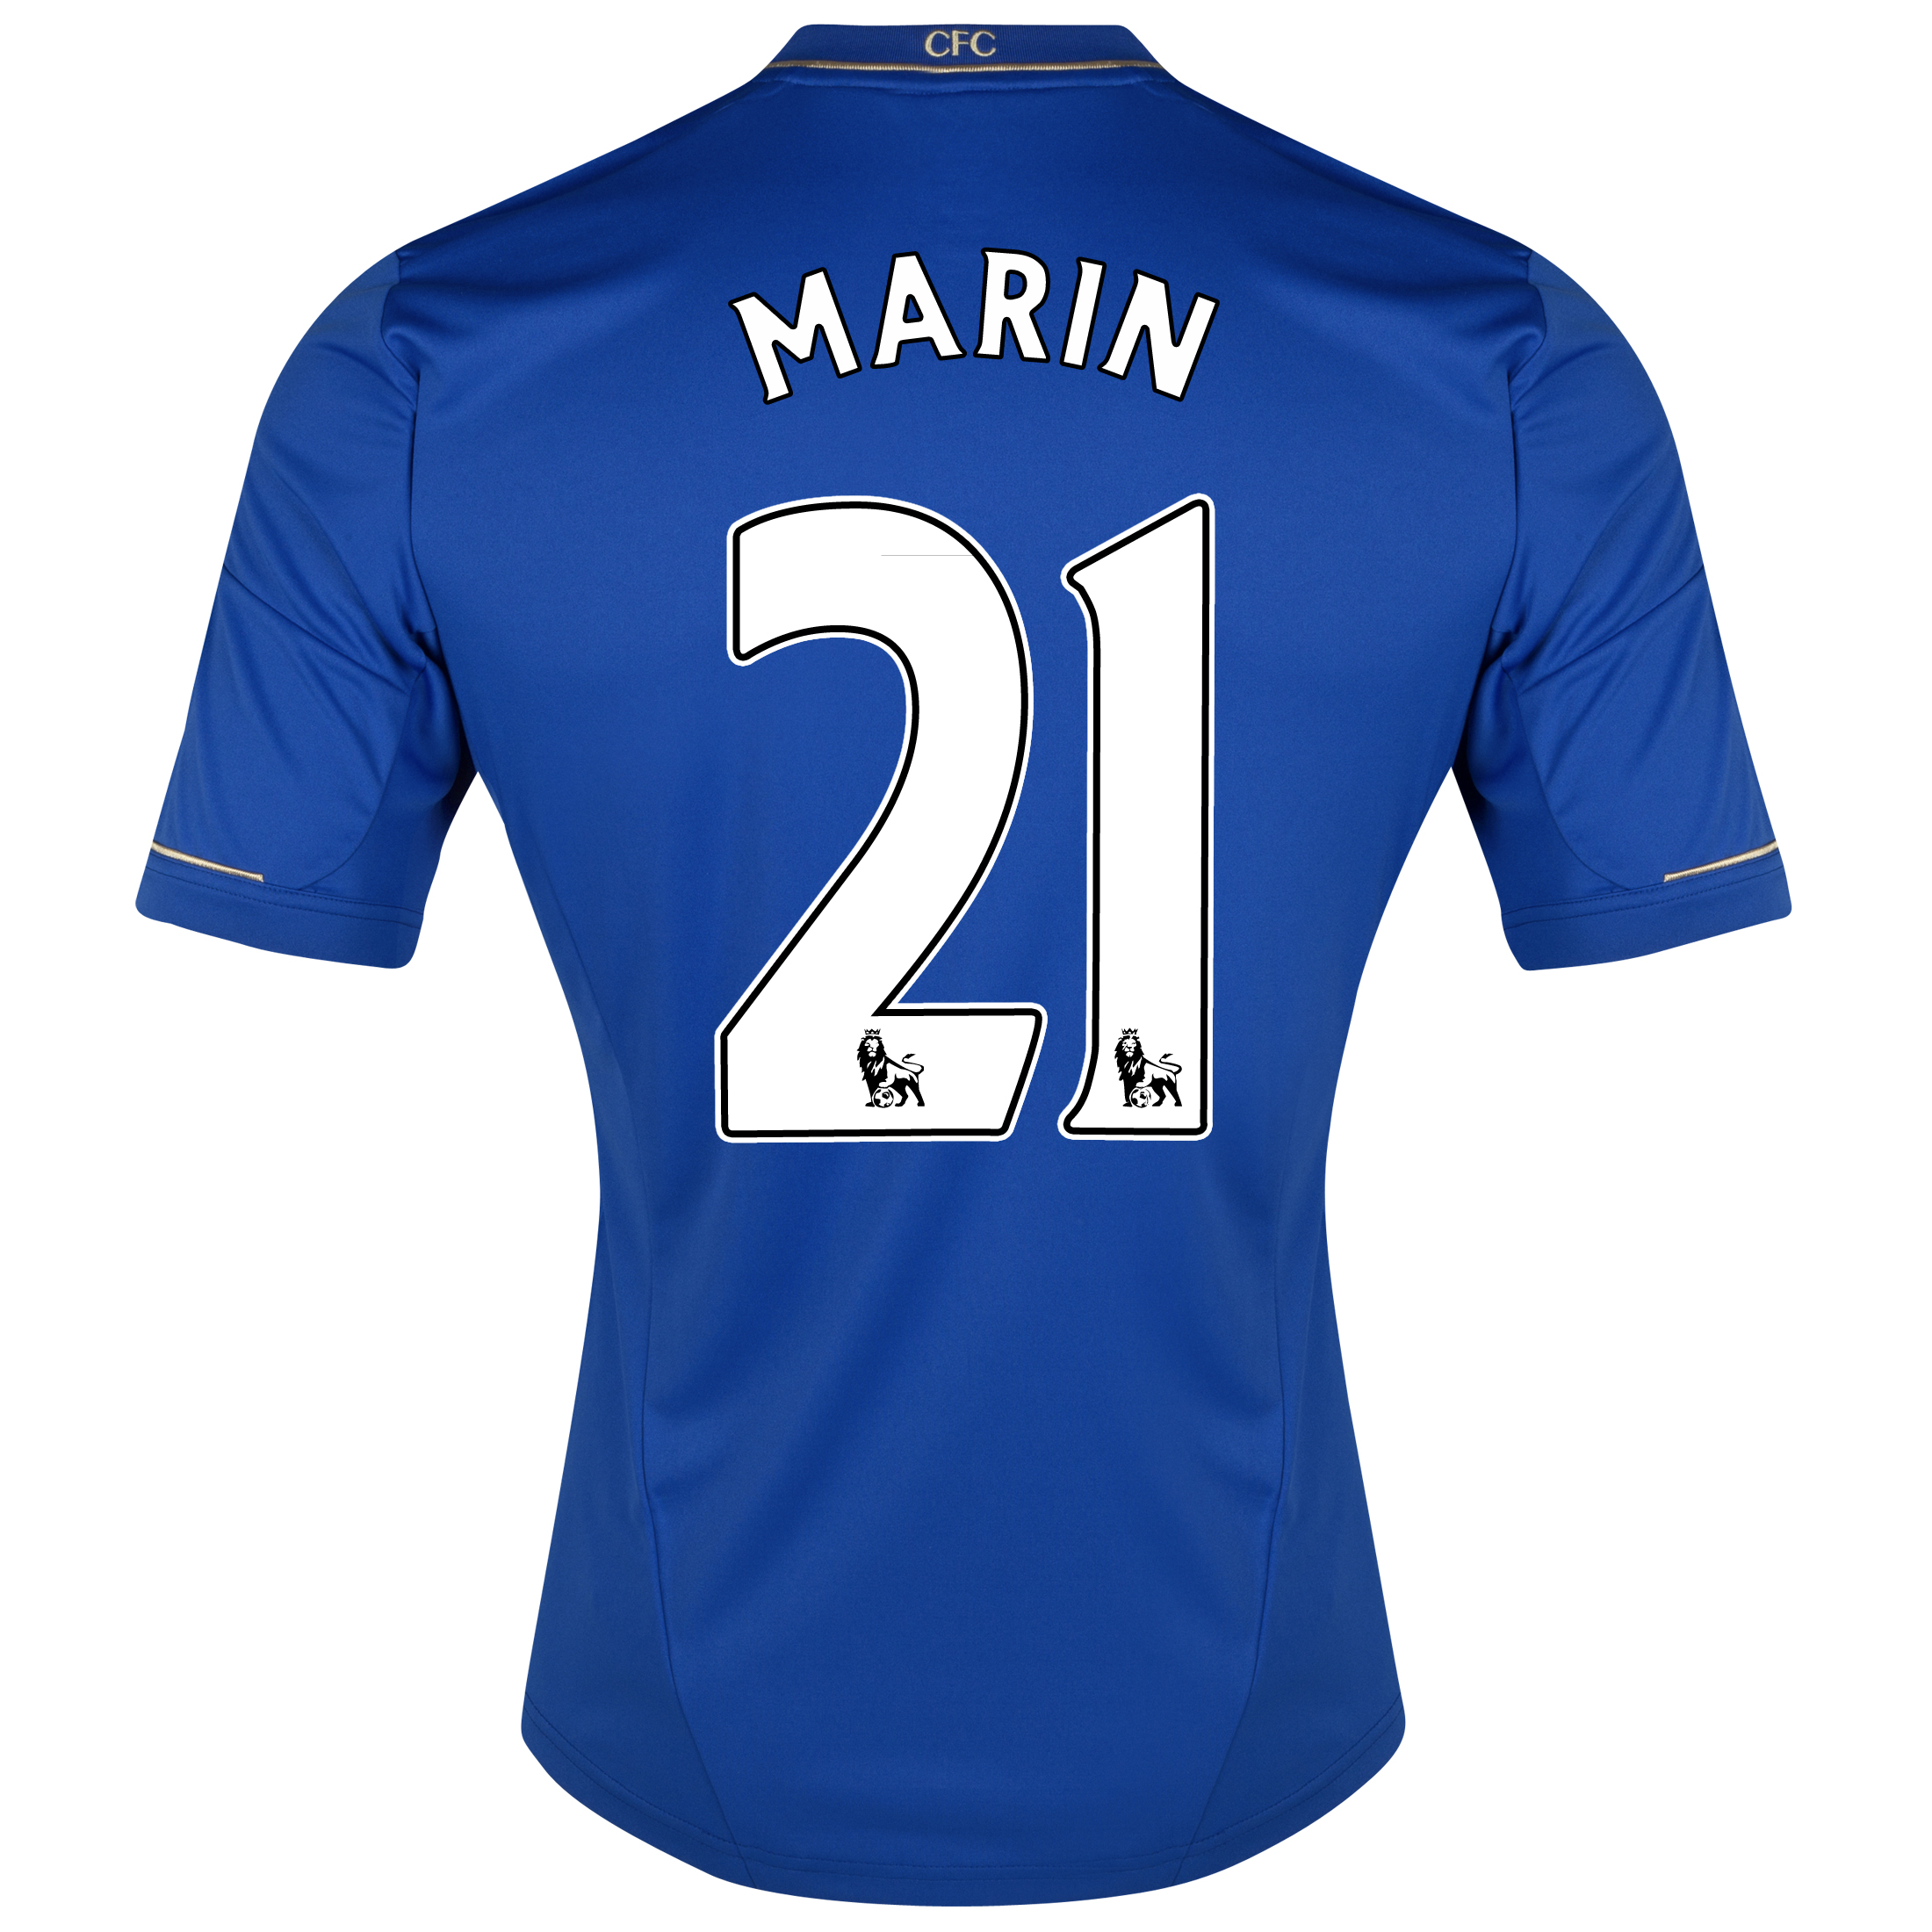 Chelsea Home Shirt 2012/13 - Youths with Marin 21 printing